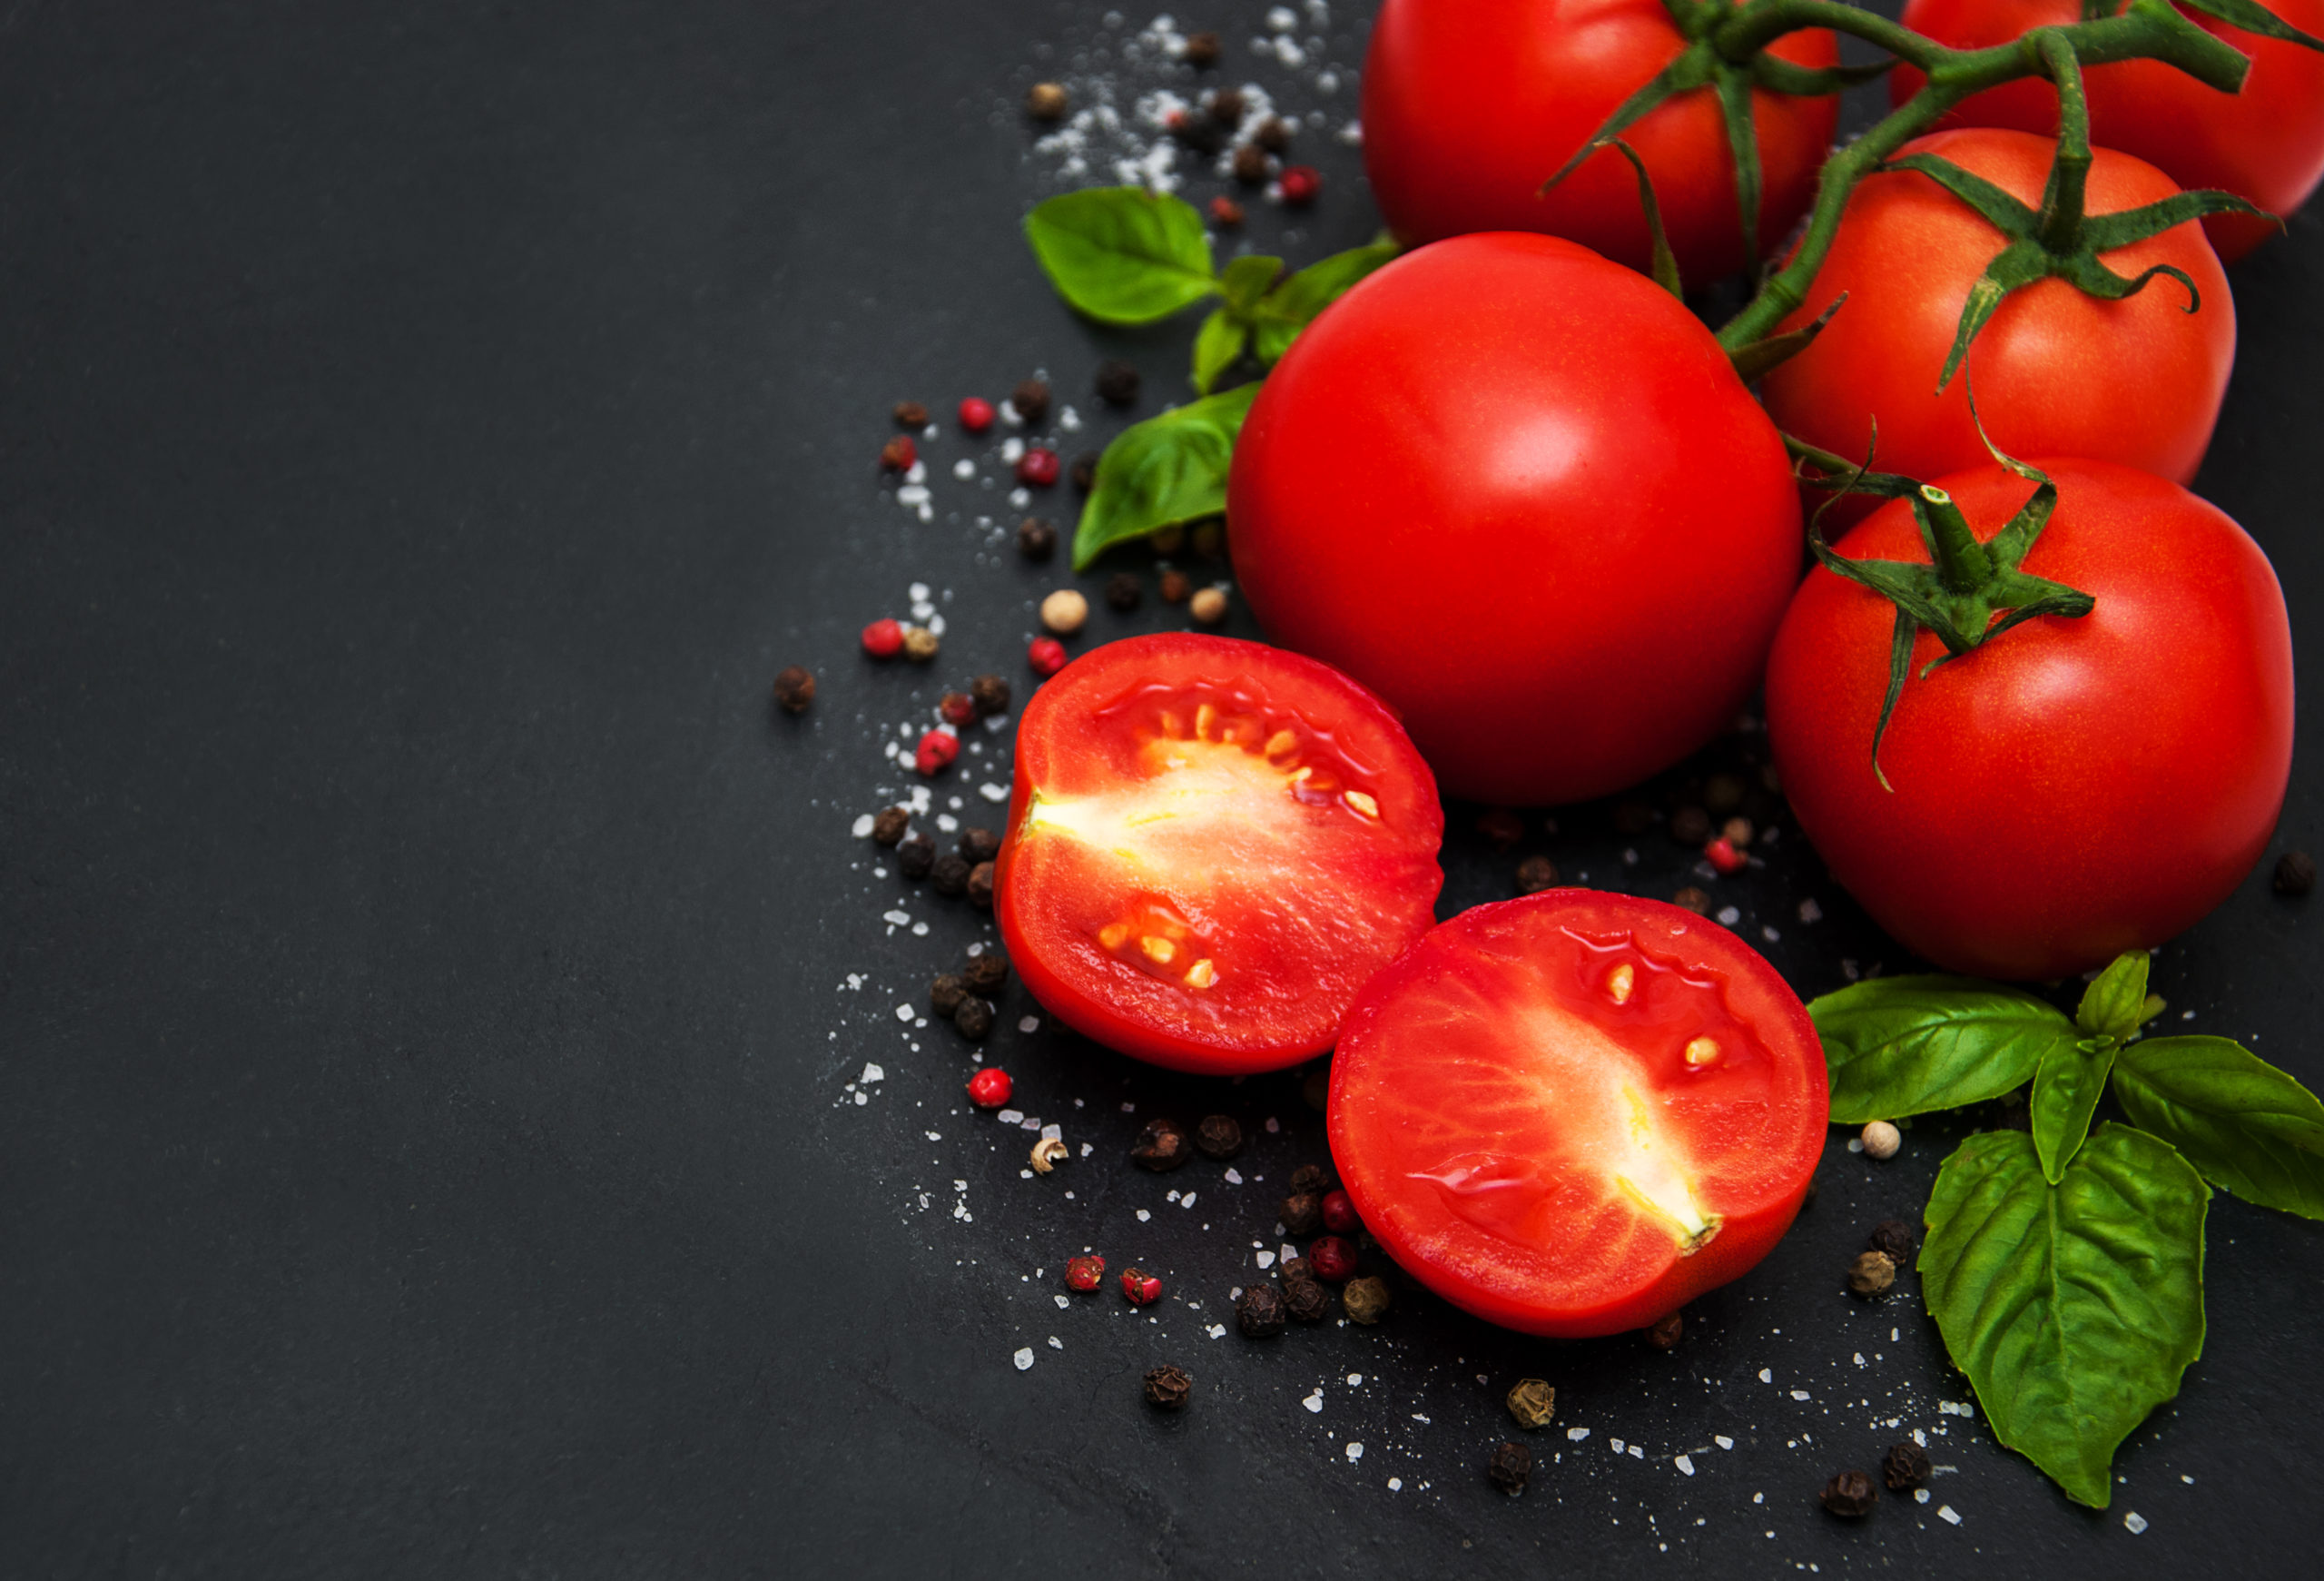 Tips For Making Great Homemade Sauces